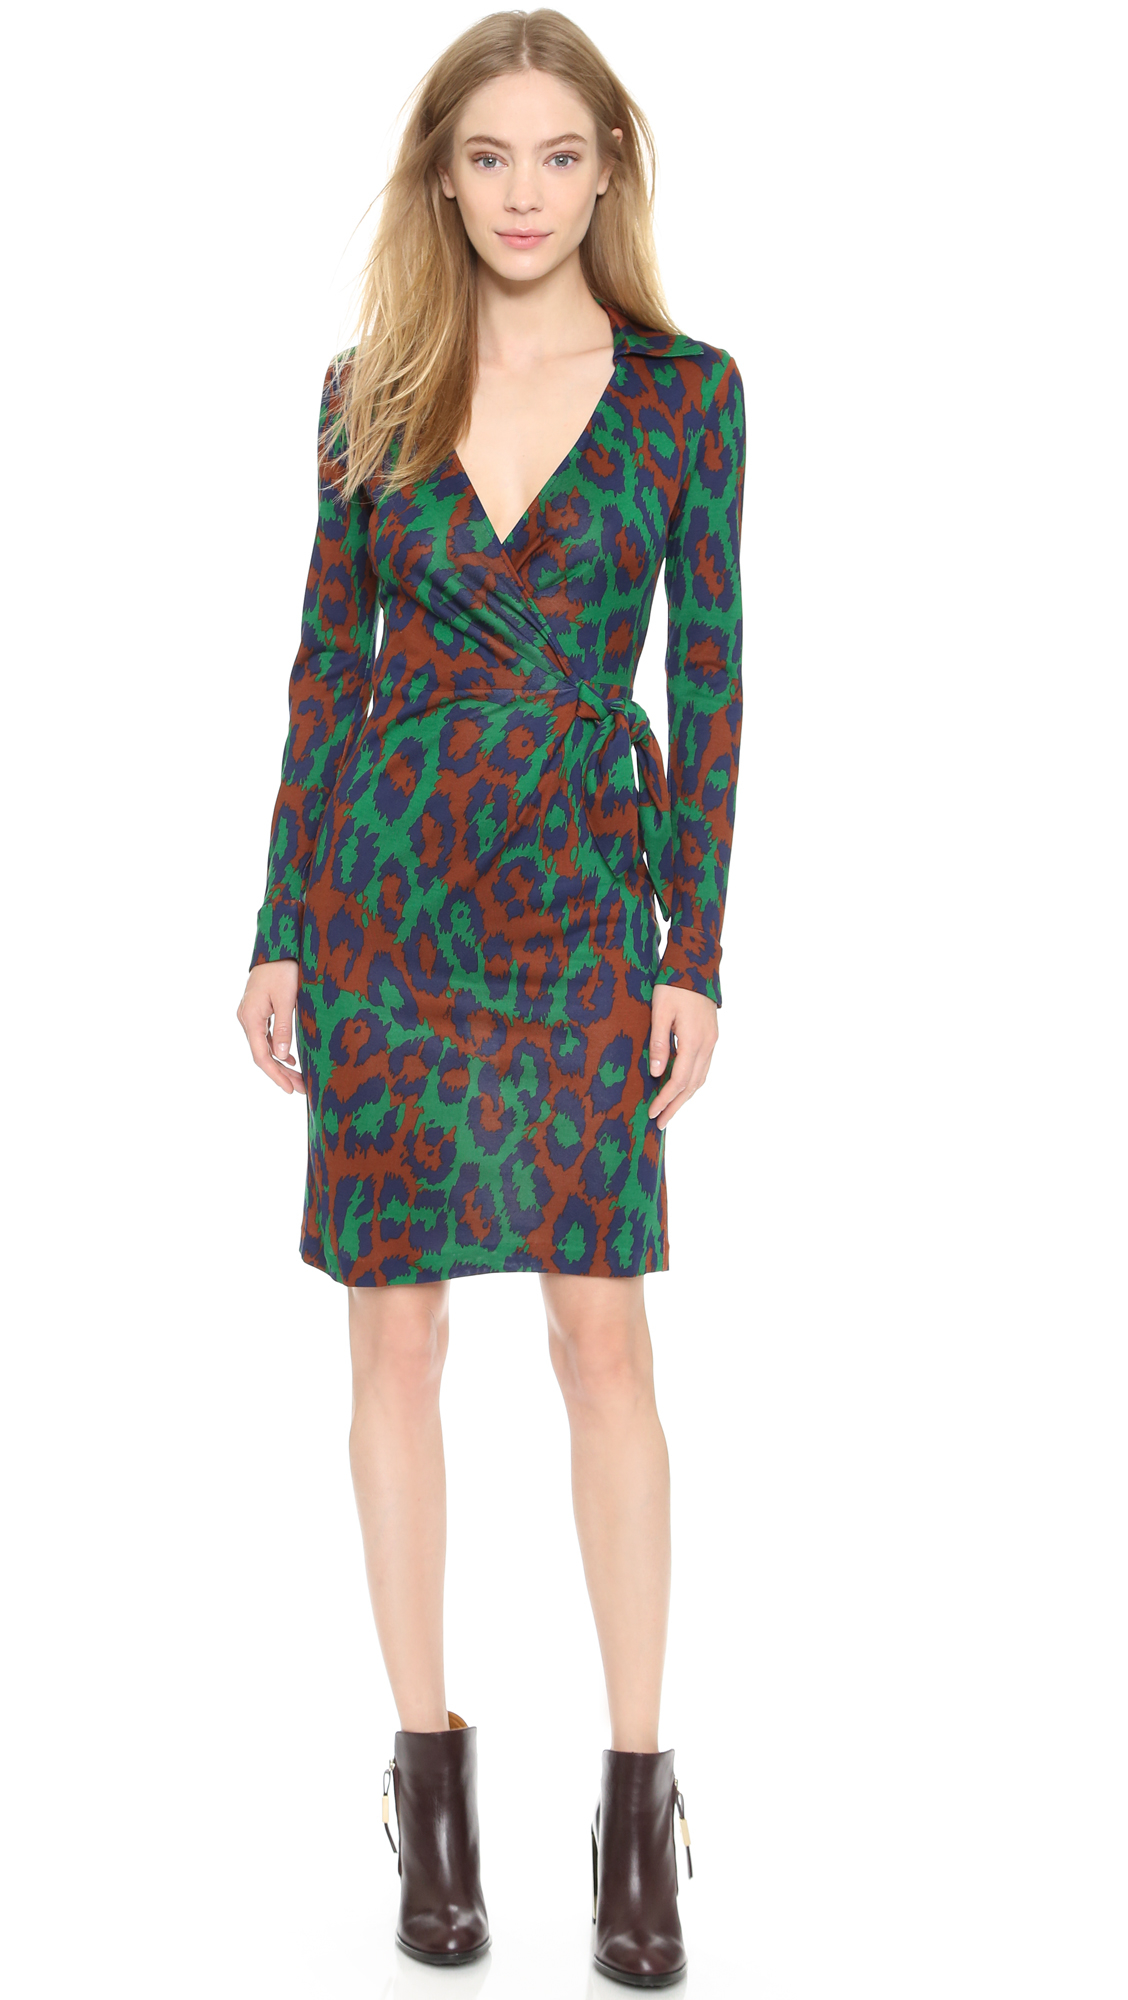 dvf wrap dress #10